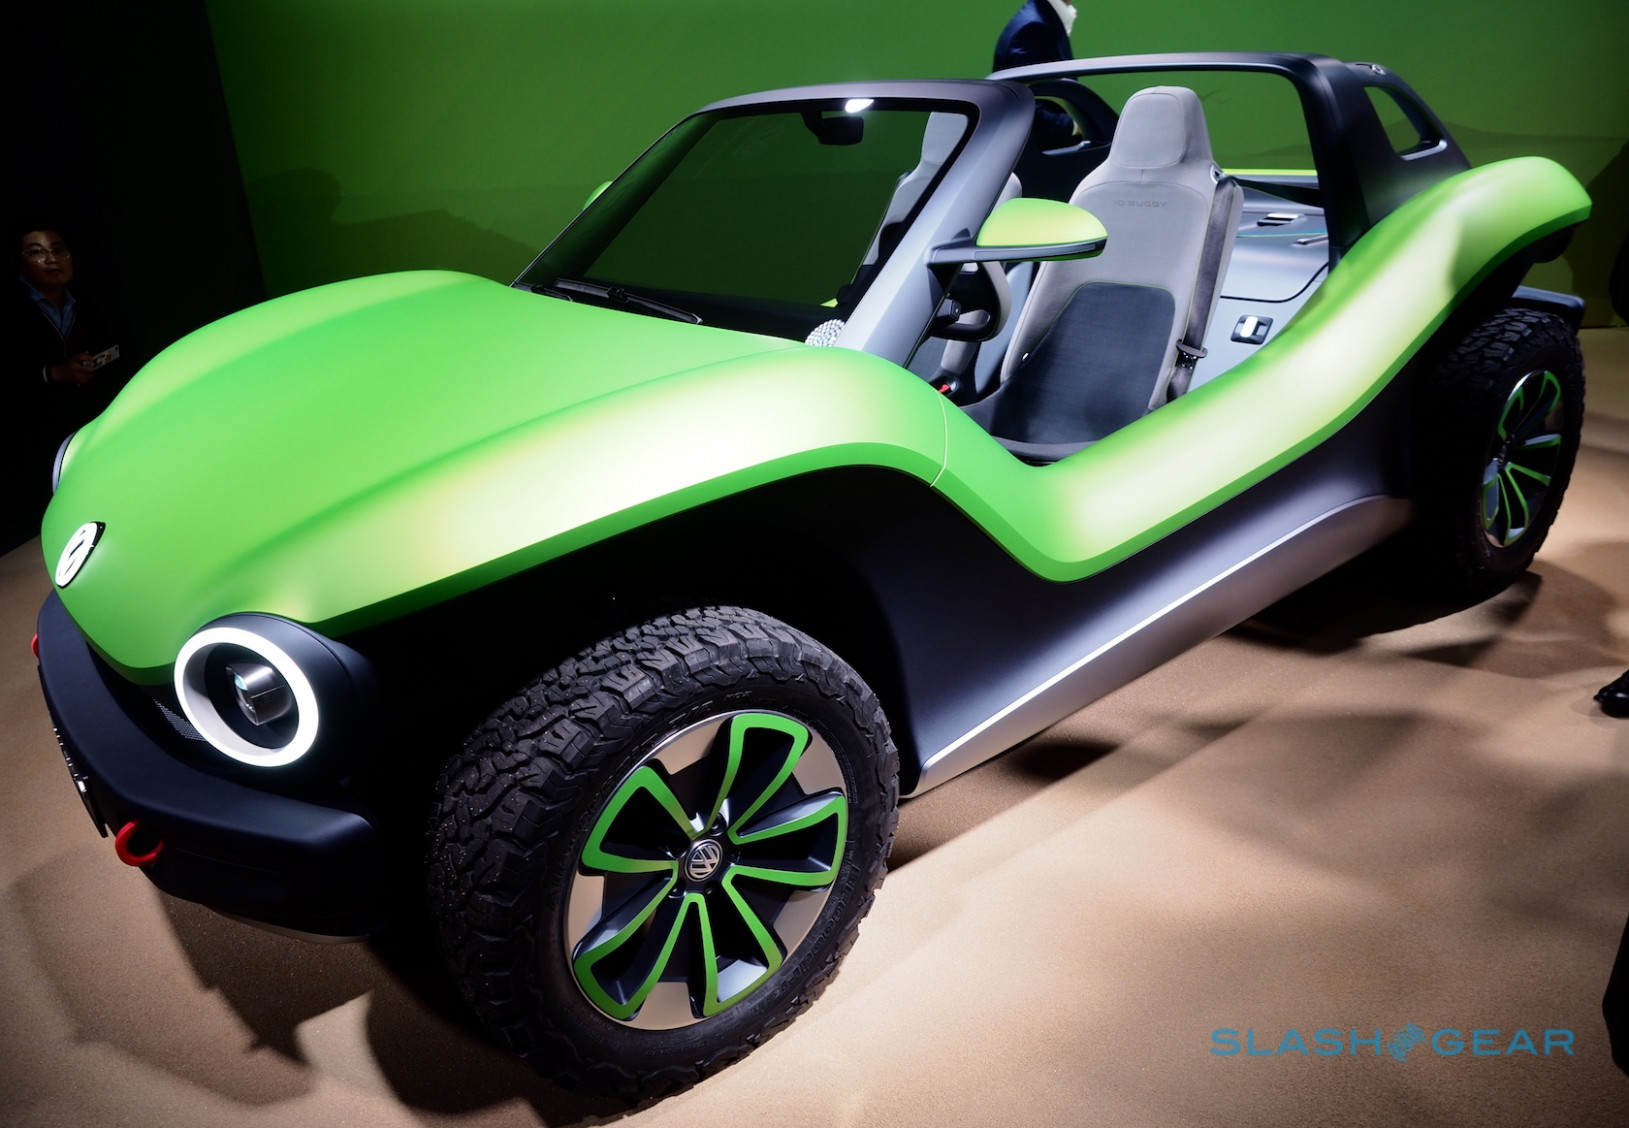 VW I.D. BUGGY is an all-electric dune buggy you have to love ...